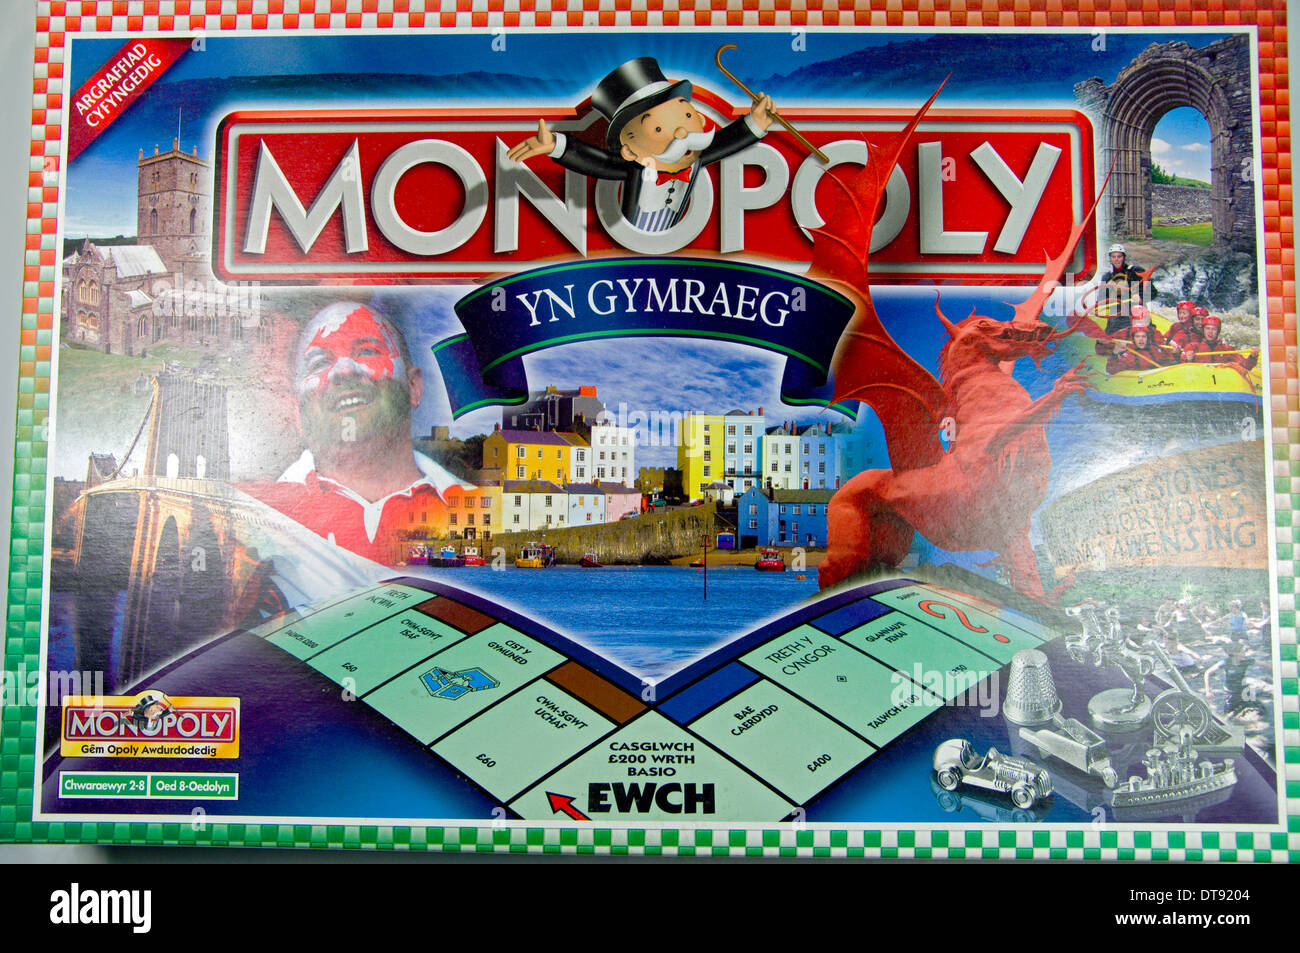 Welsh language version of Monopoly board game. - Stock Image